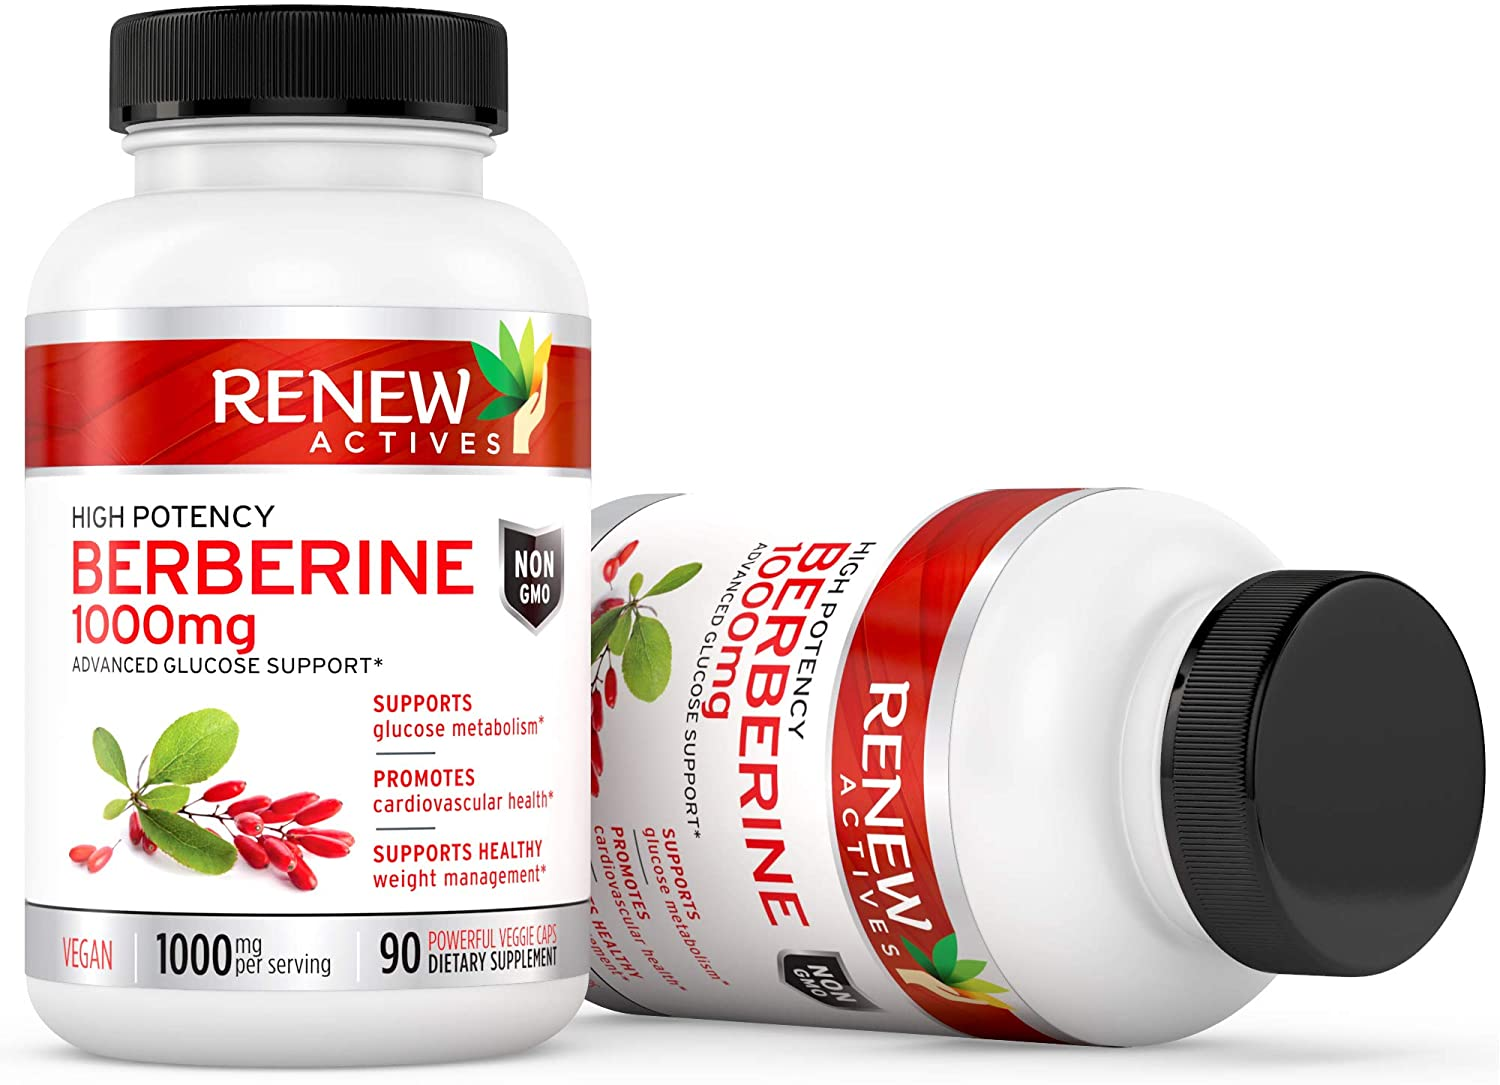 Renew Actives High Potency Berberine 1000mg - 90 Capsules